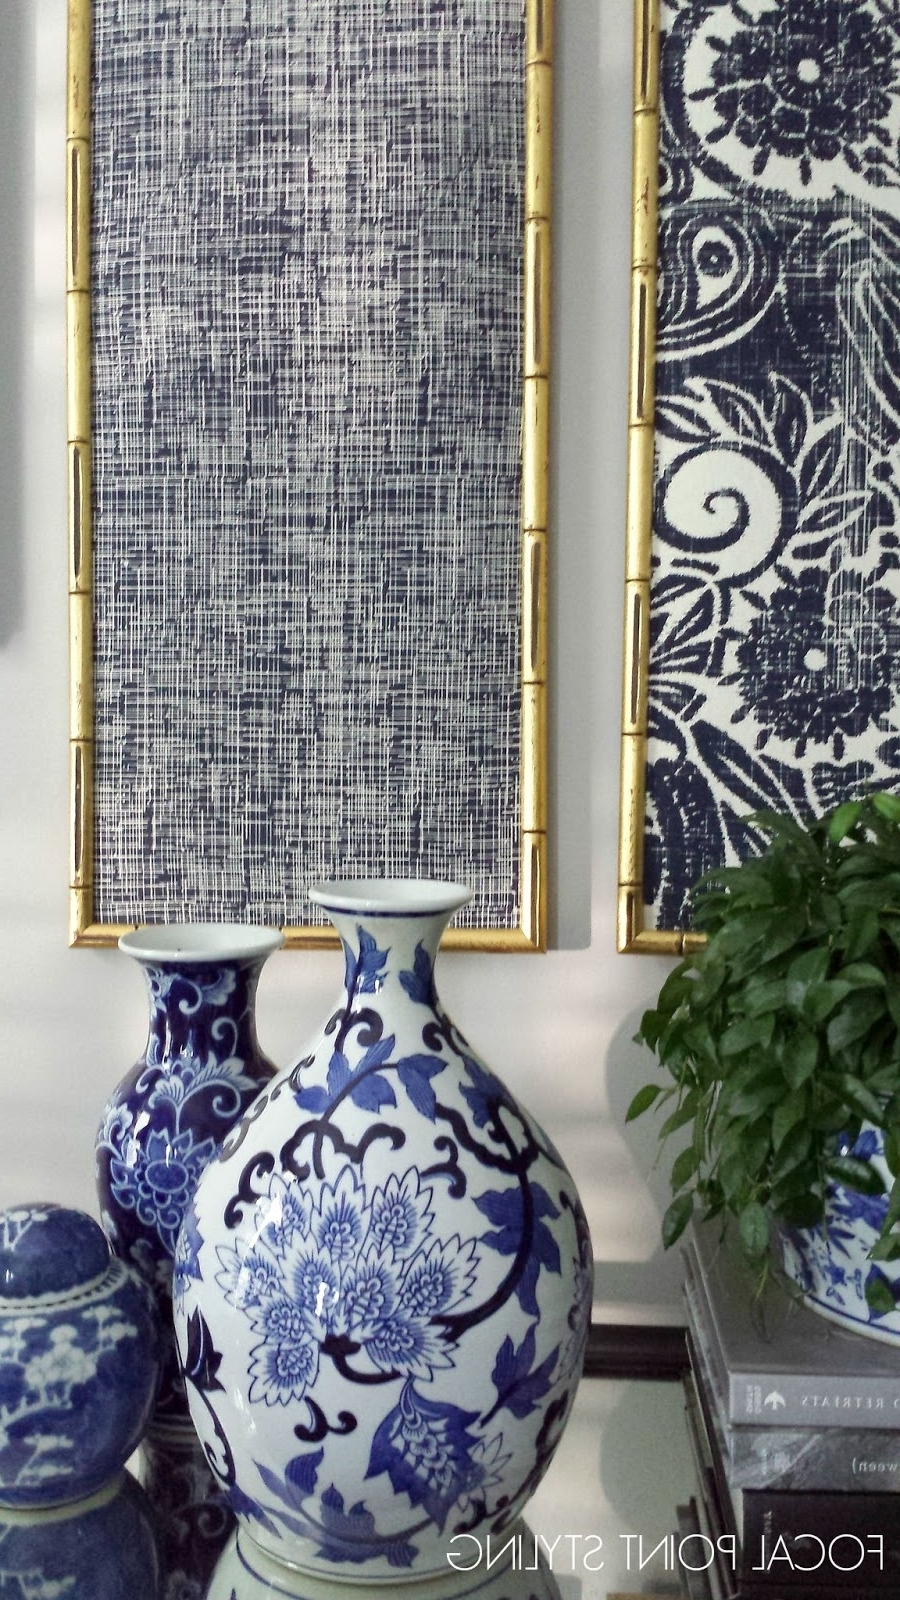 Widely Used Focal Point Styling: Diy Indigo Wall Art With Framed Fabric In Framed Fabric Wall Art (View 15 of 15)